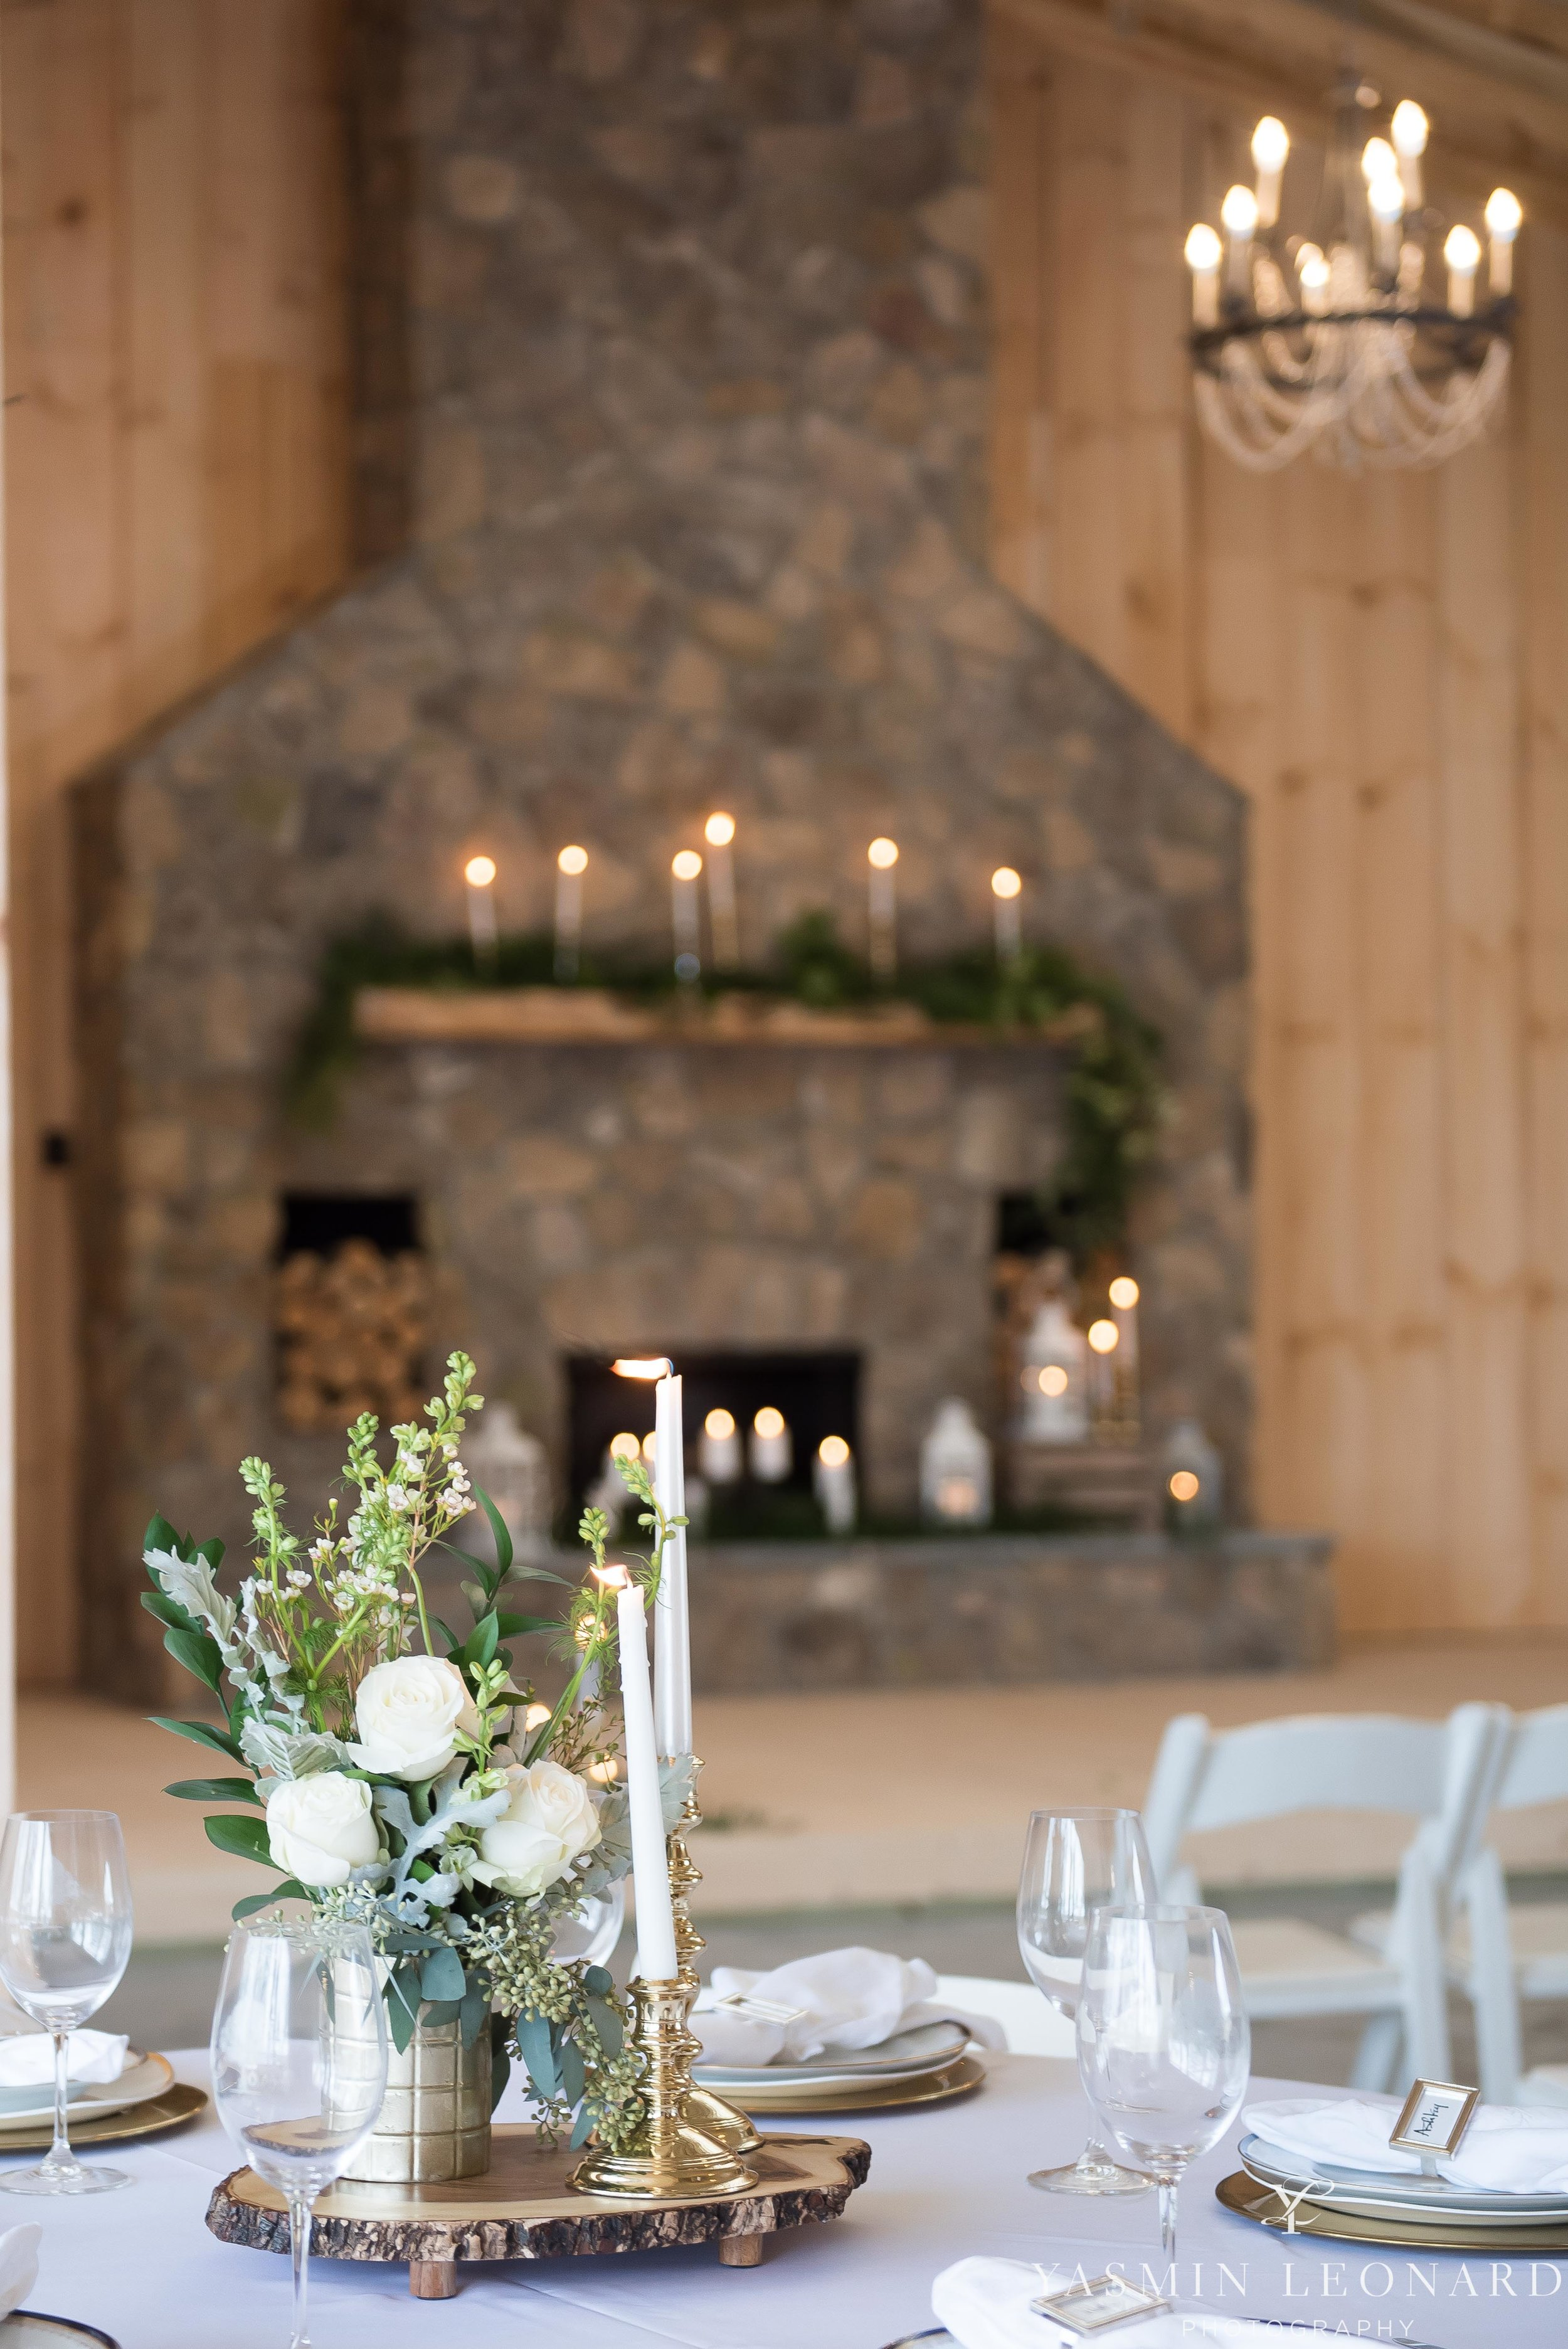 Old Homeplace Vineyard - Grits and Glitter - Dashing Dames Bridal Boutique - Just Priceless - Yasmin Leonard Photography - High Point Weddings - NC Weddings - NC Wedding Venues - High Point Jewelers - NC Wines - NC Vineyards - Cupcake Cuties-11.jpg